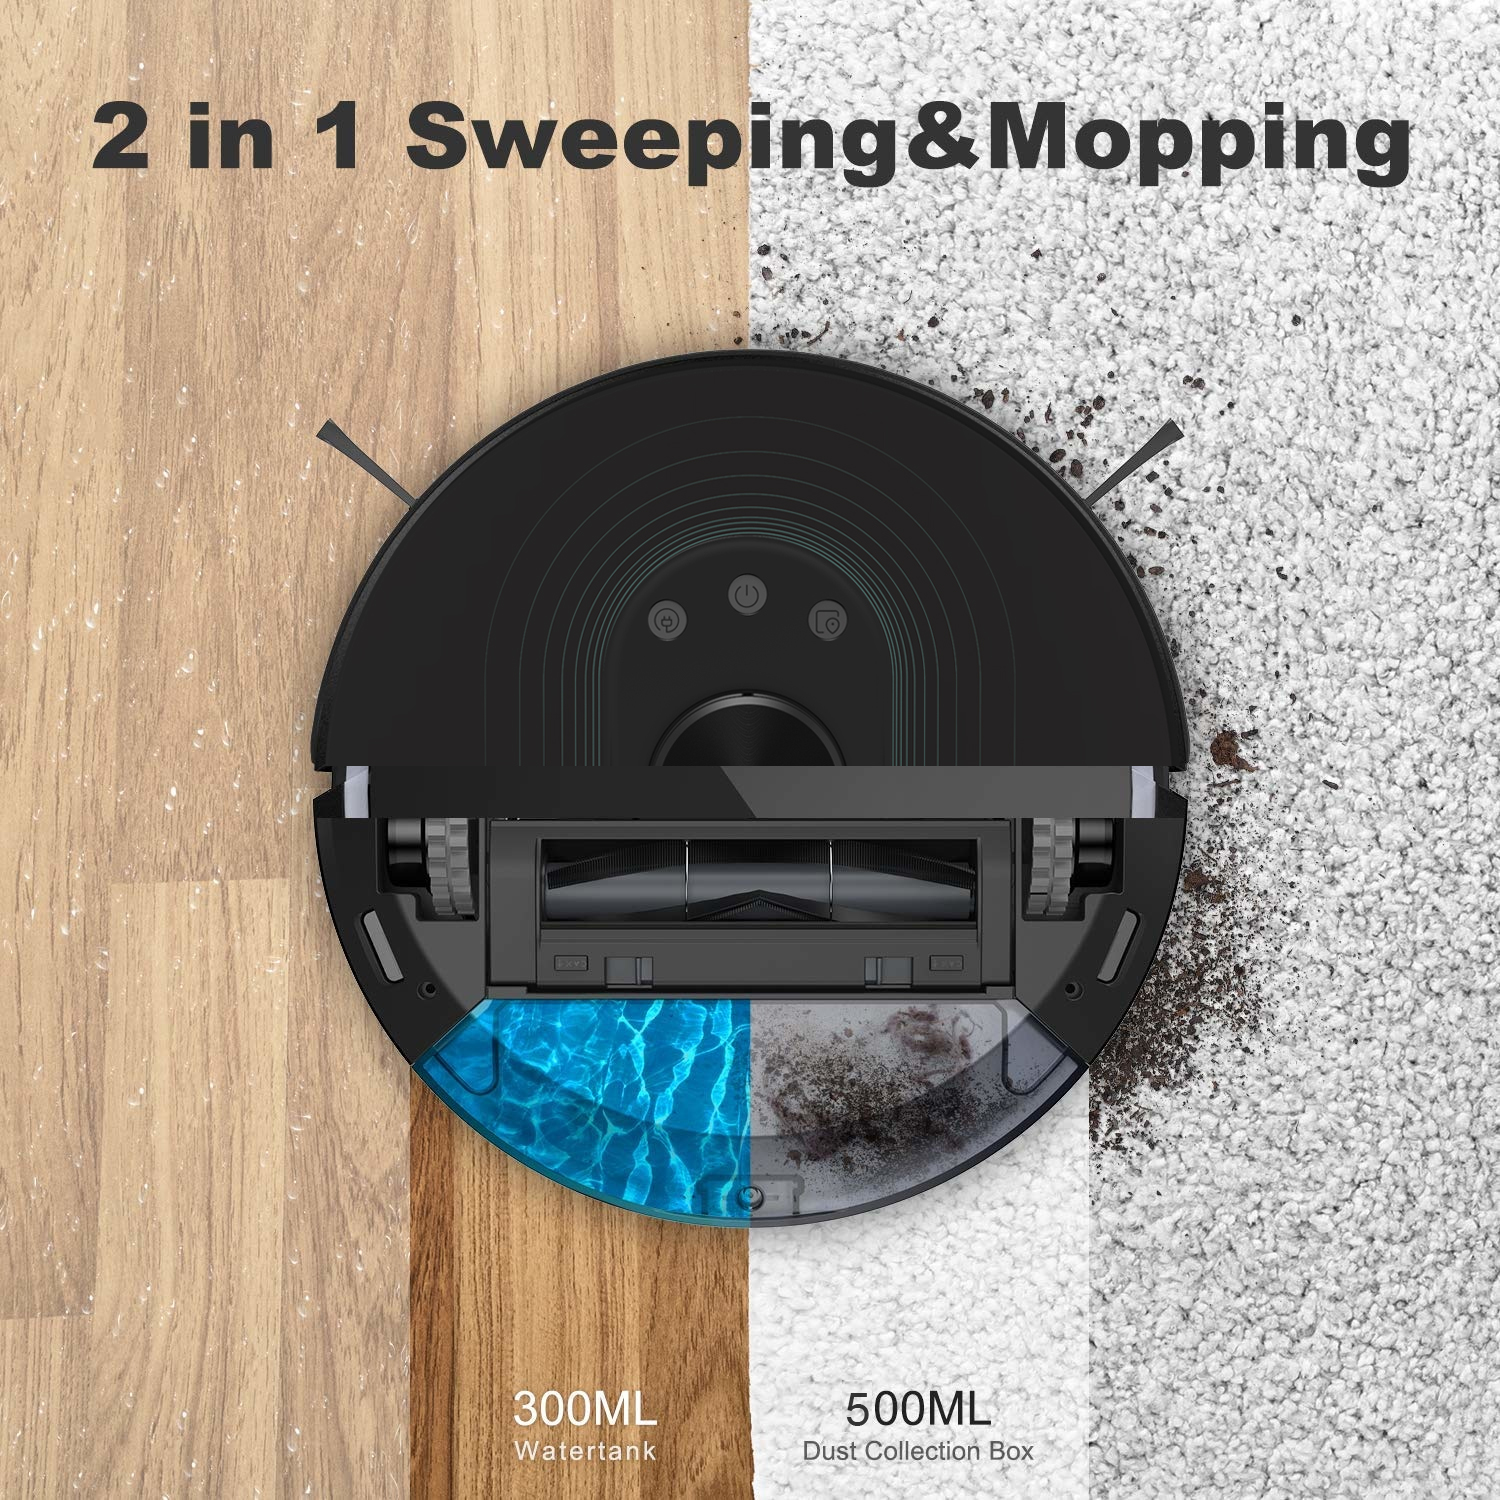 2 in 1 Sweeping and Mopping